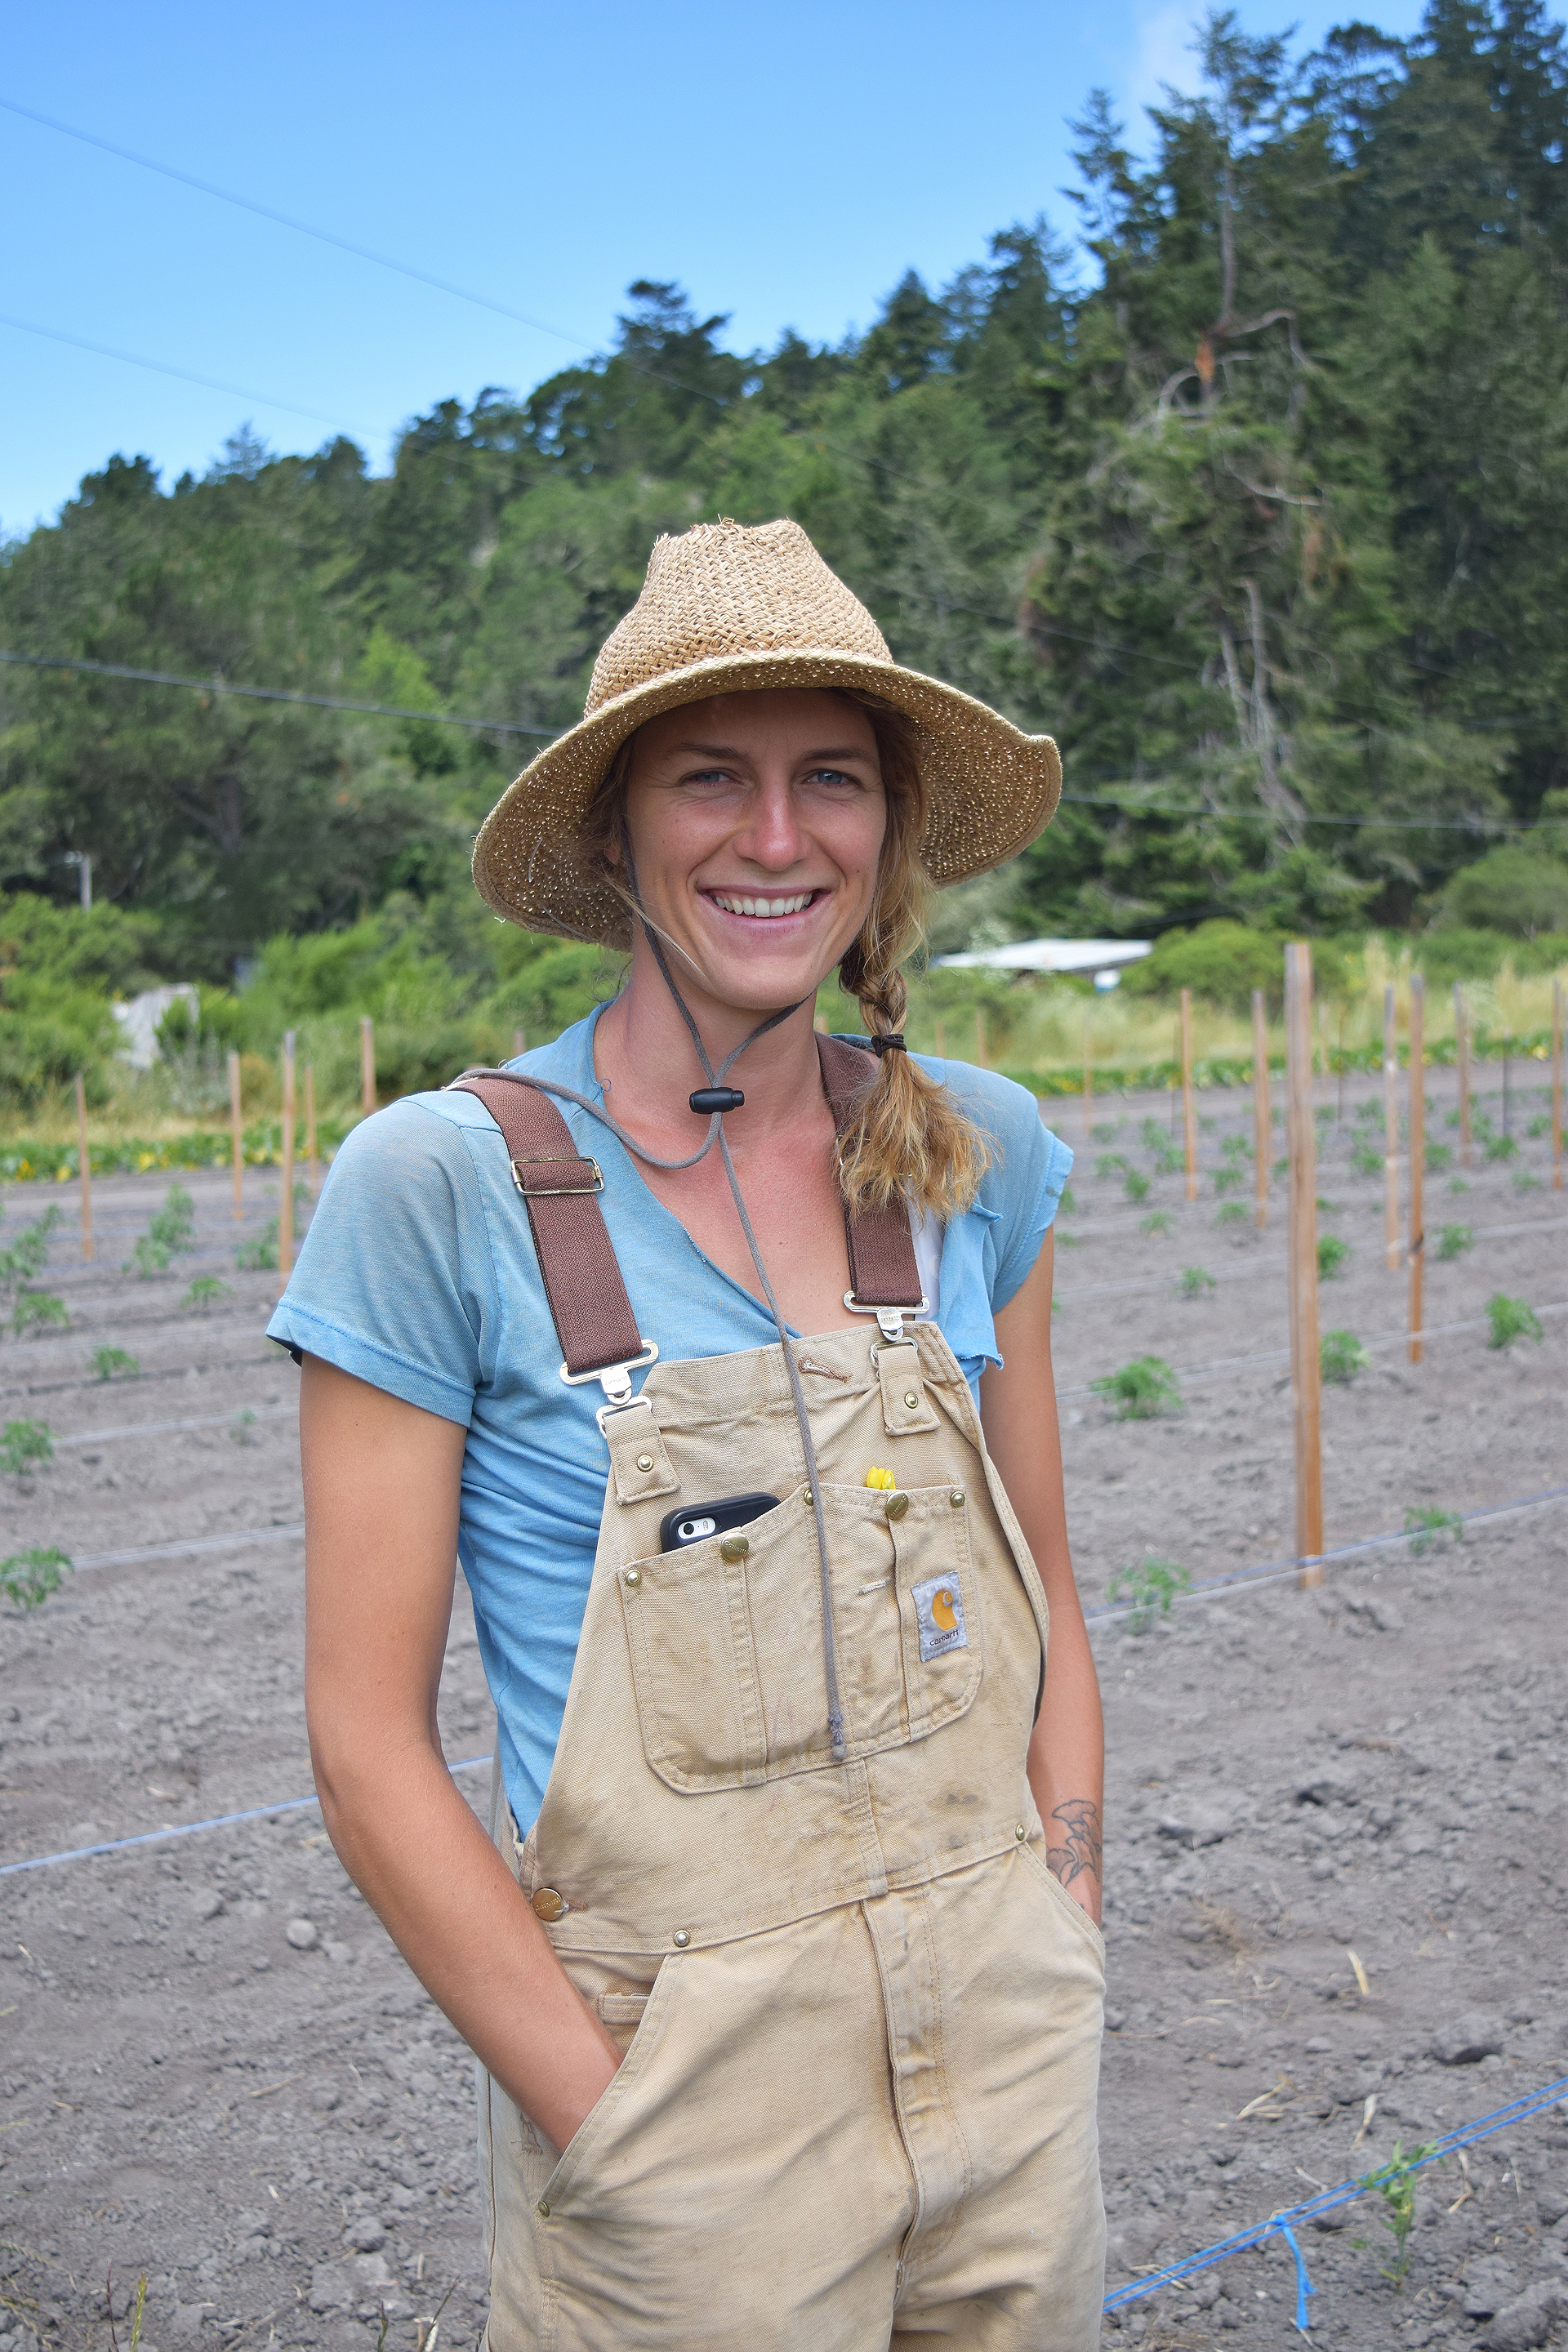 Gia Matzinger and her two farming partners grow Seascape and Albion strawberries at Green Oaks Creek in Pescadero.